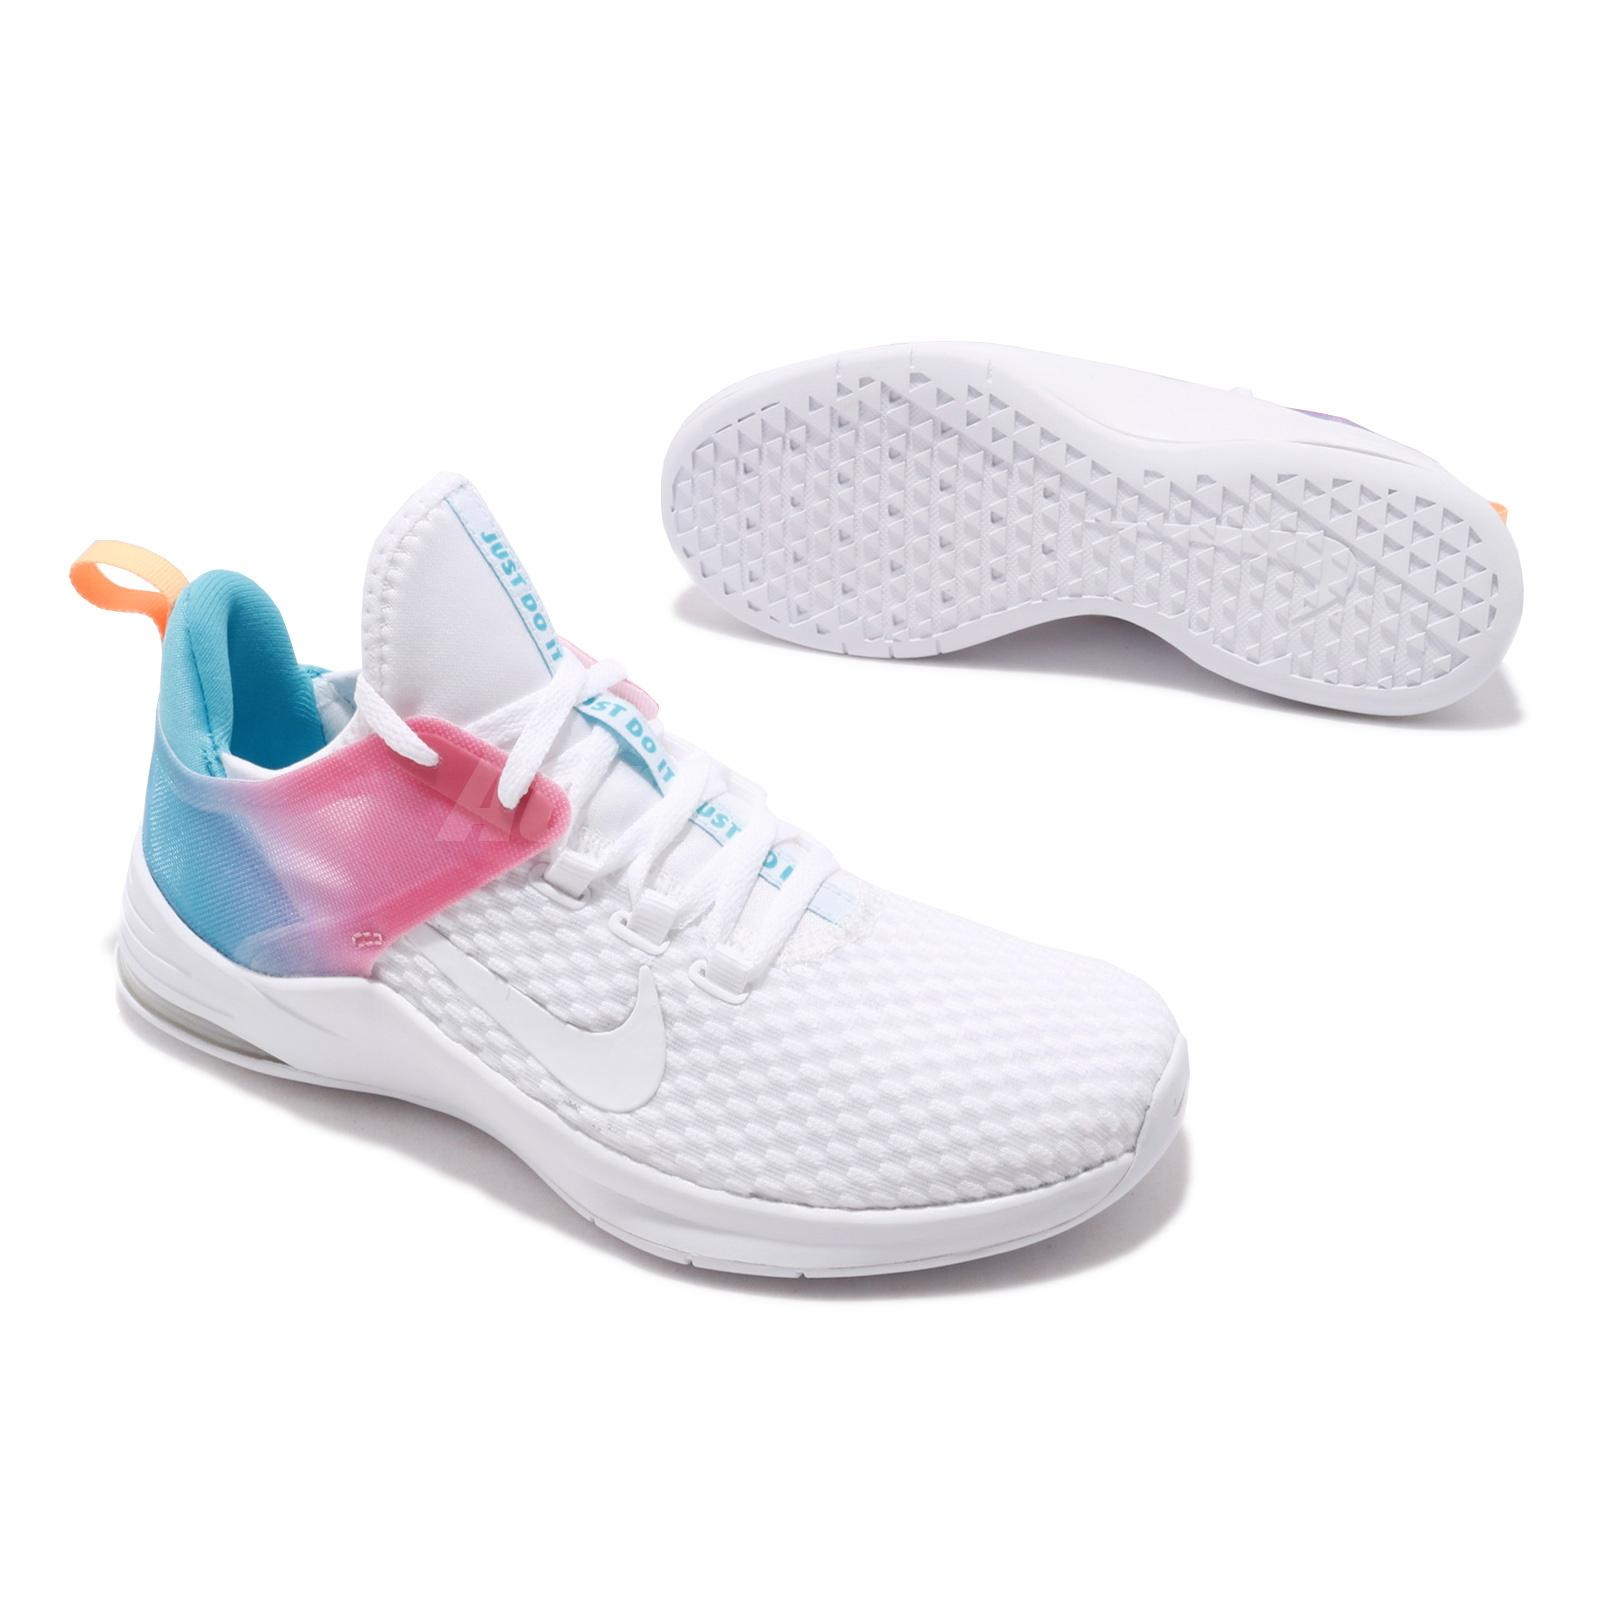 Details about Nike Wmns Air Max Bella TR 2 White Blue Fury Pink Women Training Shoe AQ7492 102